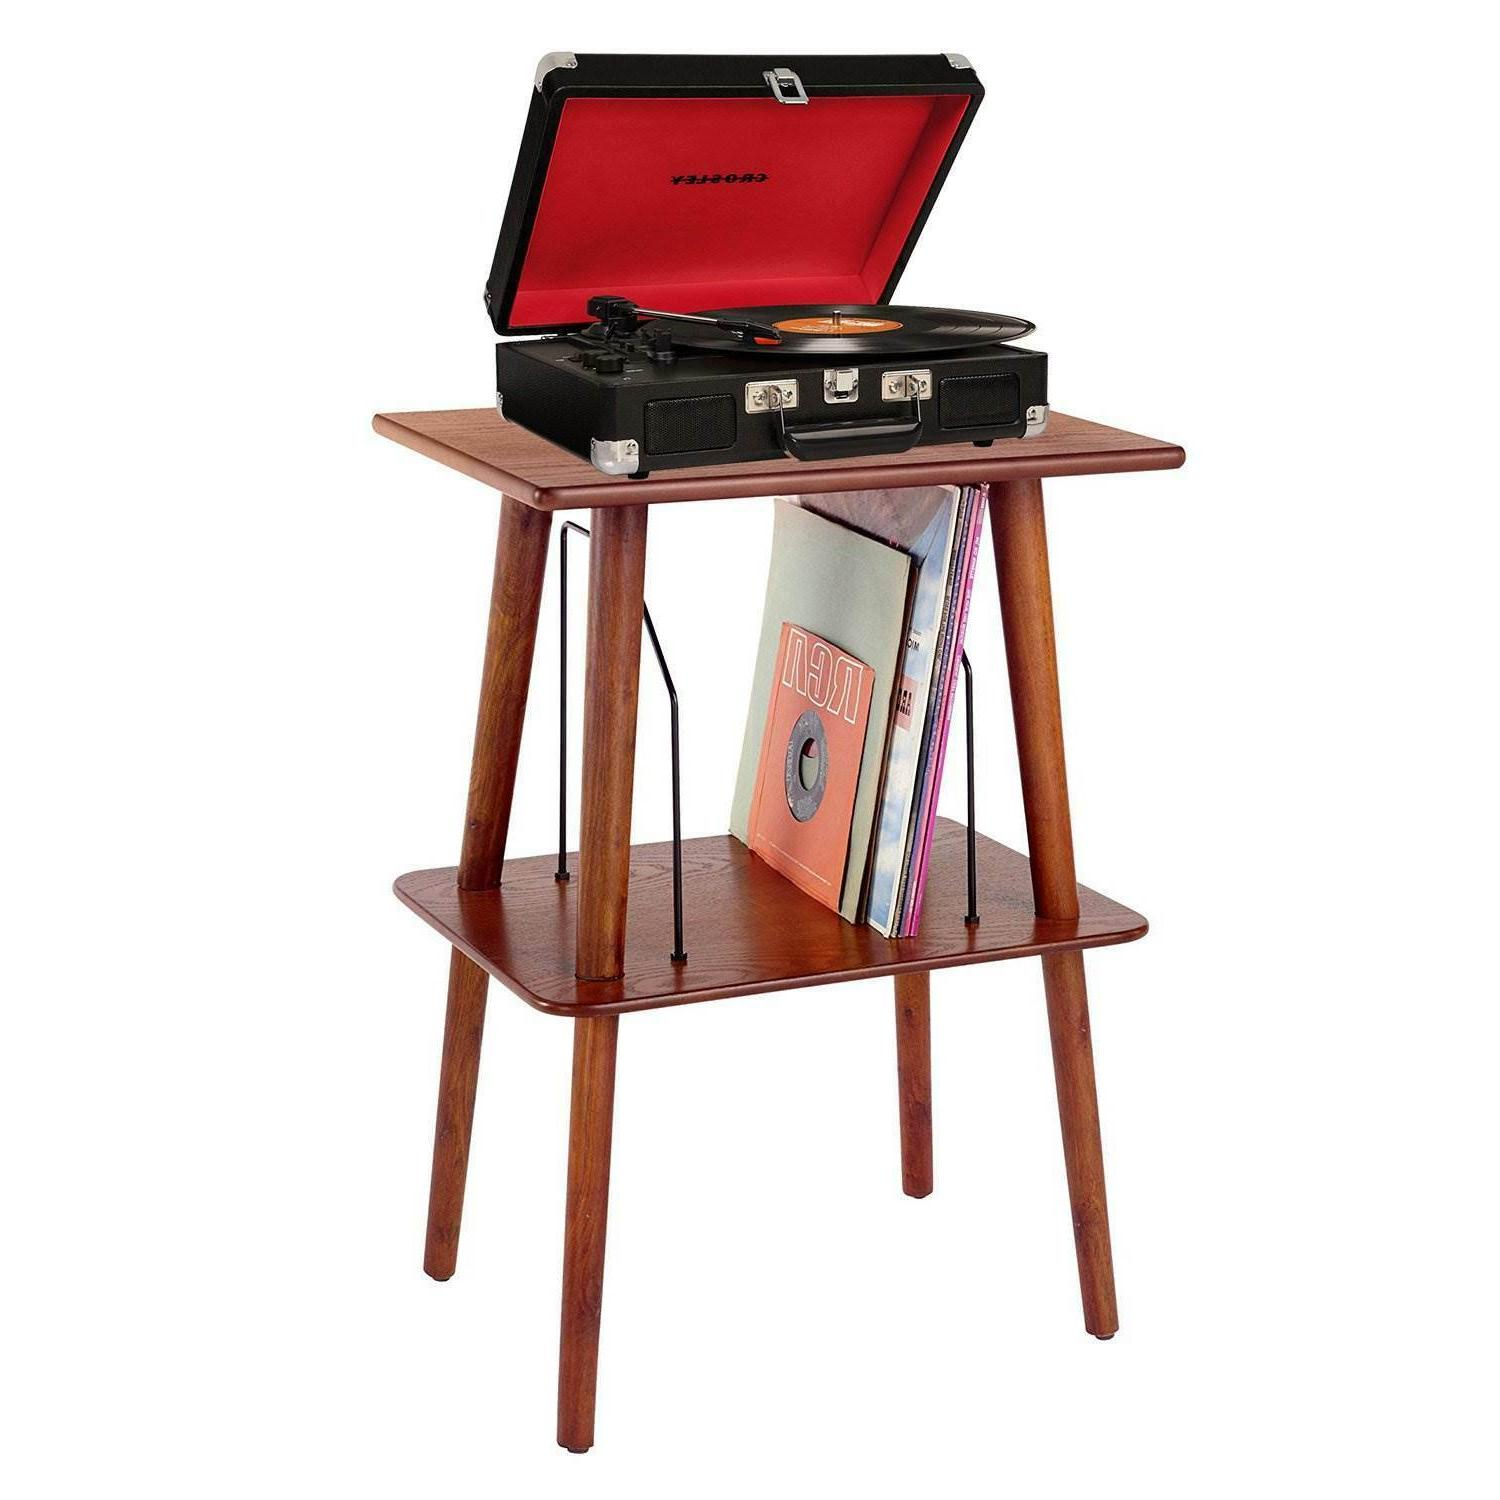 Small Retro Turntable Stand Table Record Player Vinyl LP Sto